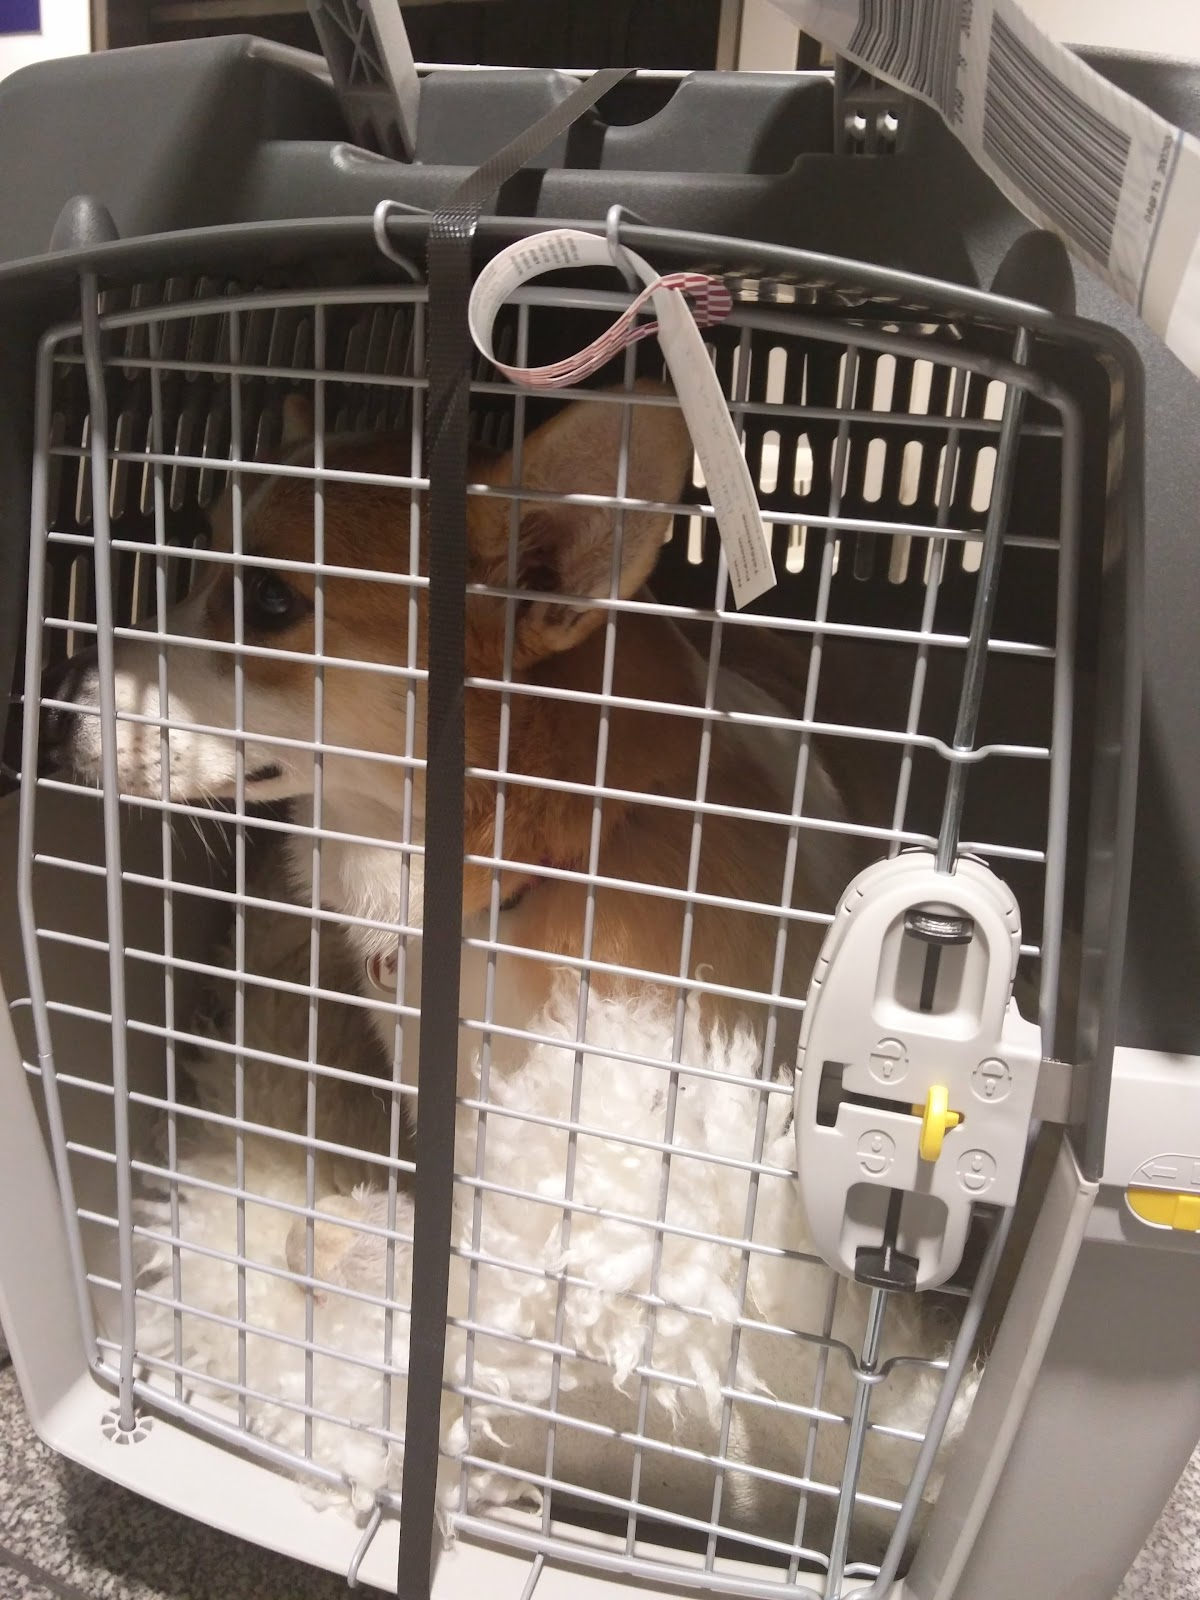 corgi in an IATA dog cage at the airport